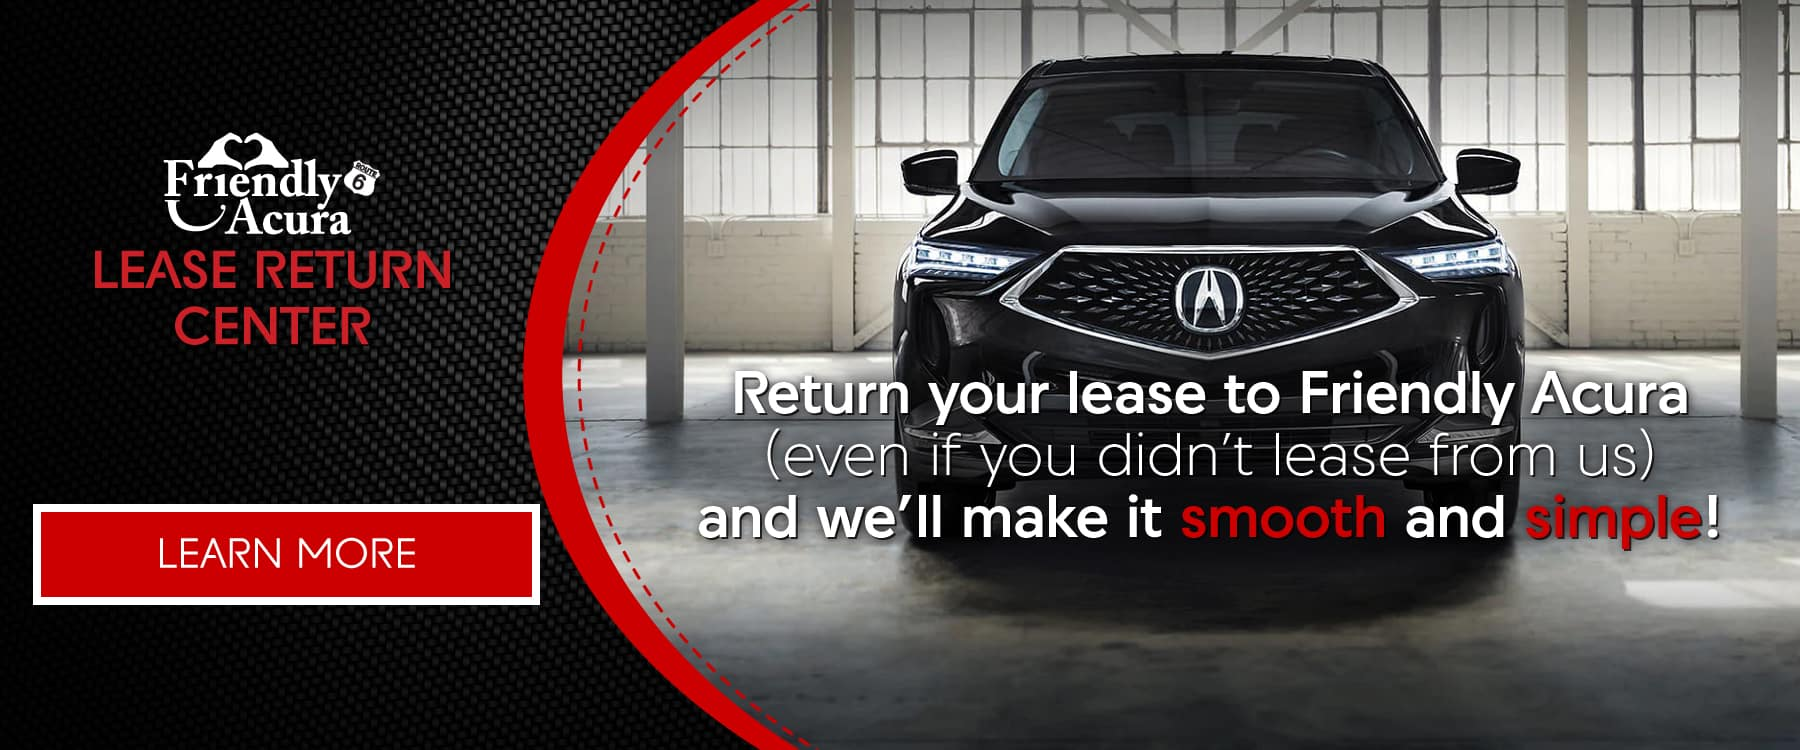 Acura Lease Return Center | Friendly Acura of Middletown